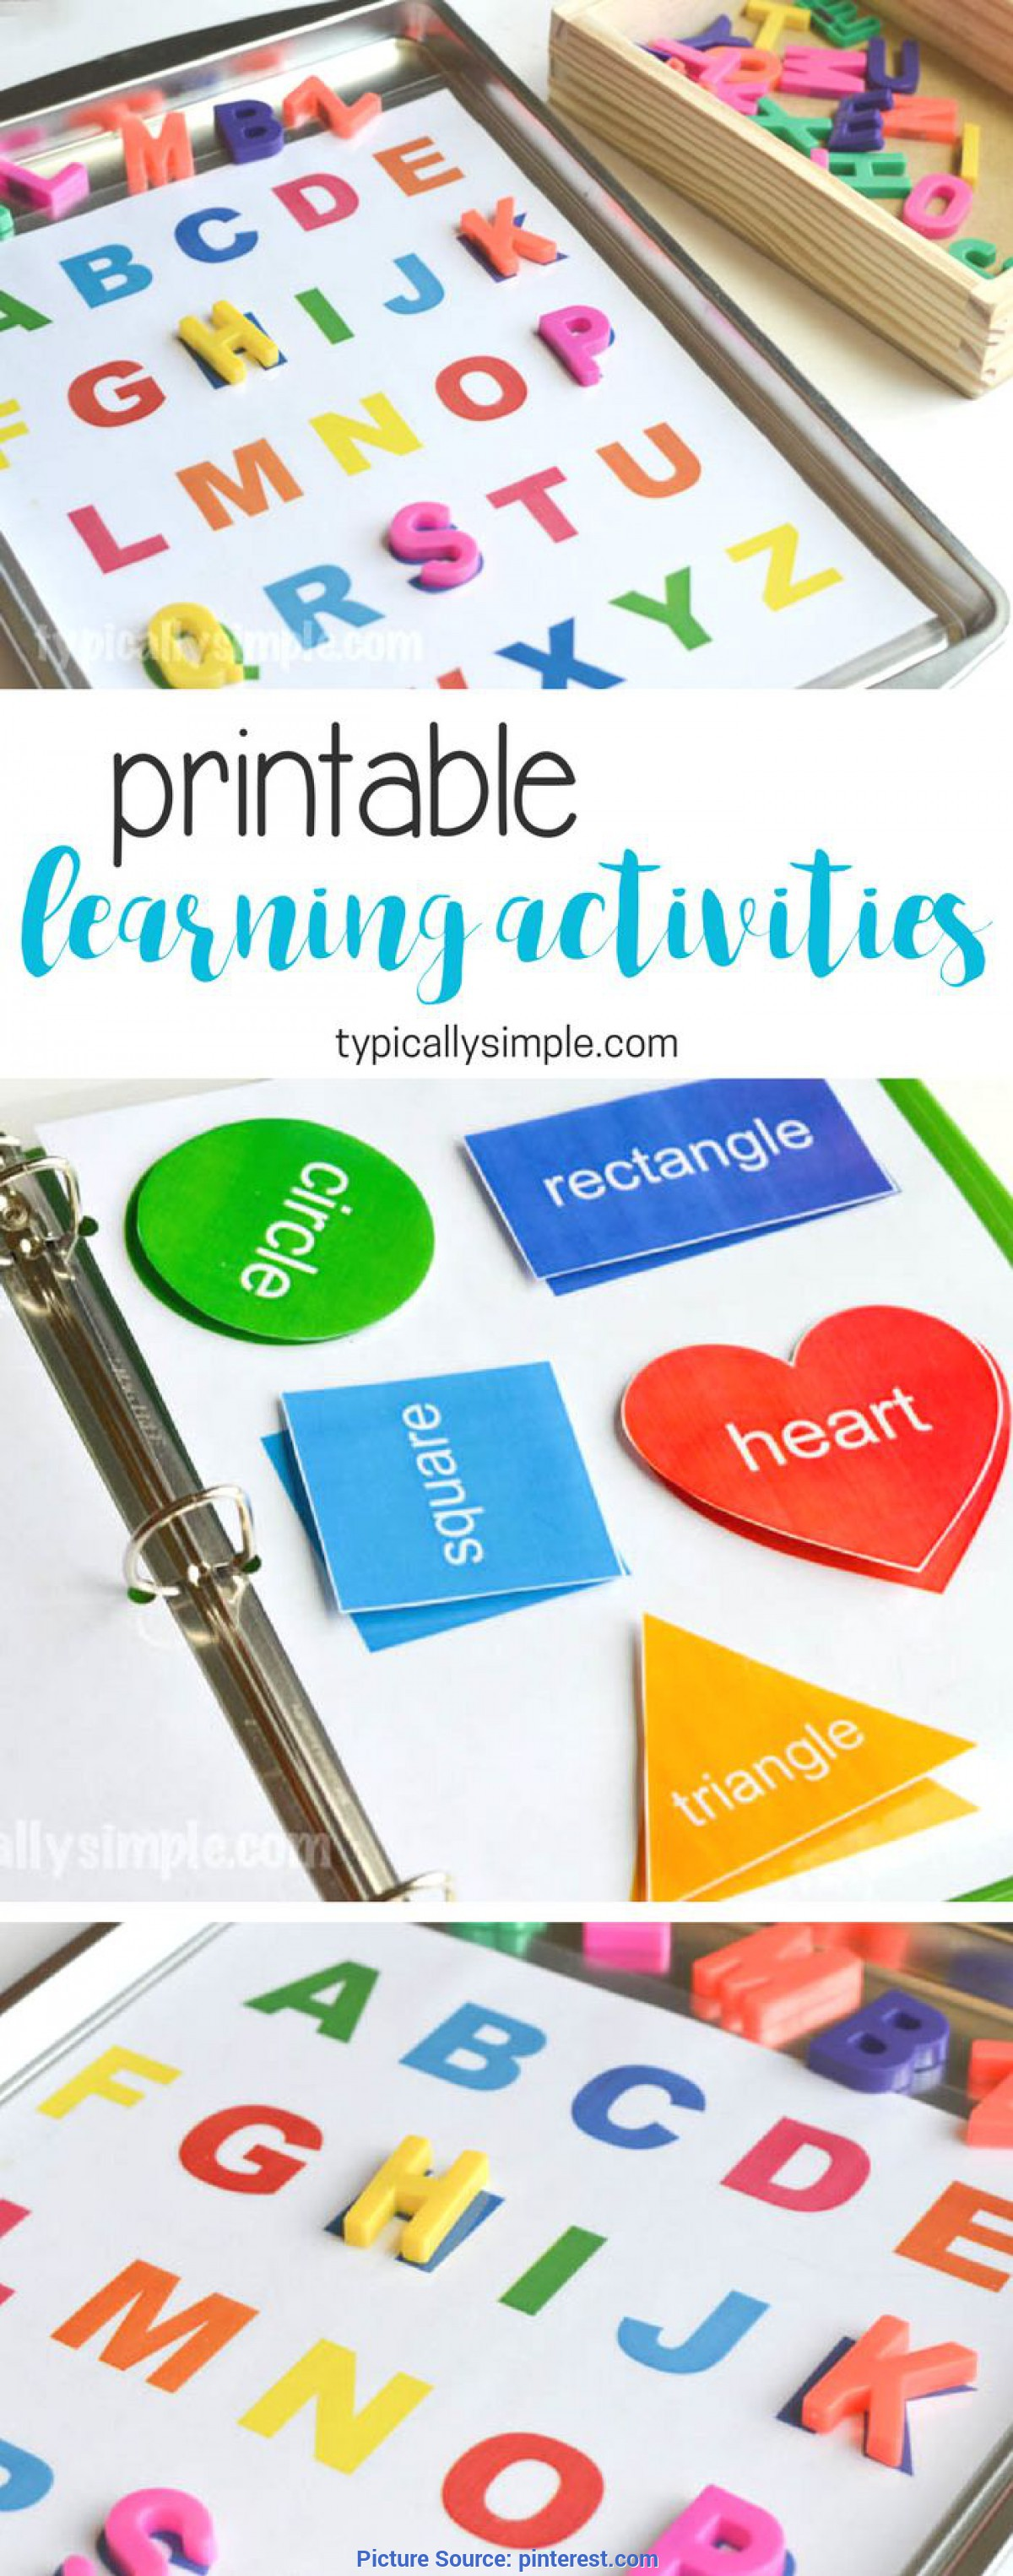 Complex Teaching Games For 2 Year Olds Best 25+ 2 Year Old Activities Ideas On Pinterest | Activities Fo